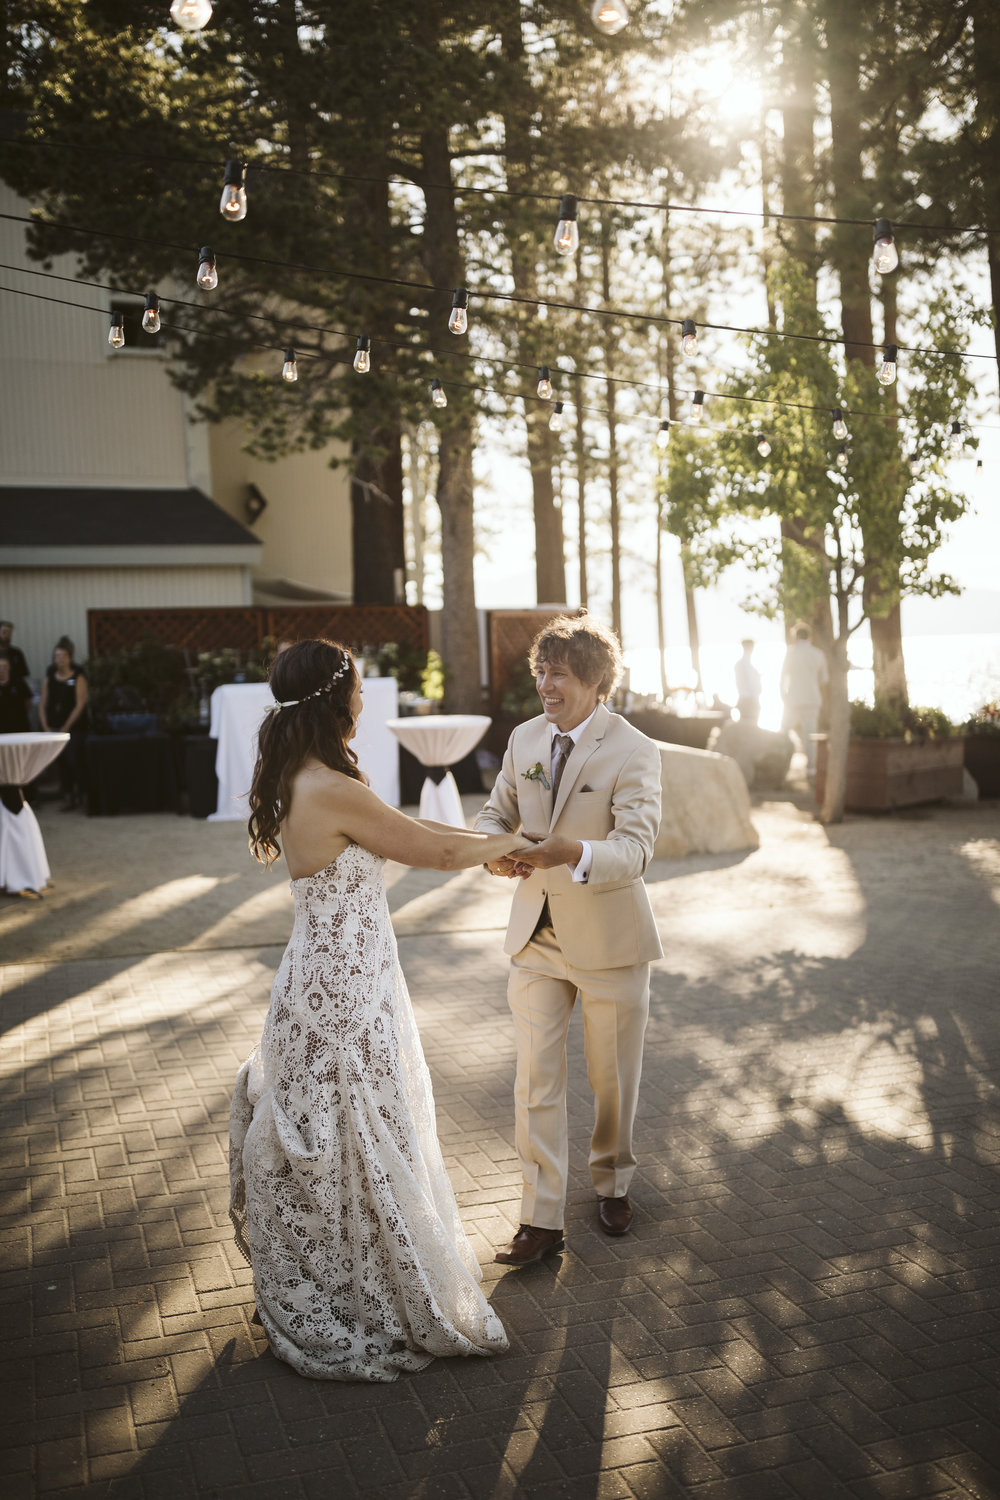 0M7A5227vildphotography-adventurewedding-tahoewedding-tahoeweddings-laketahoeweddingphotographer-californiawedding-shelly-cody.jpg